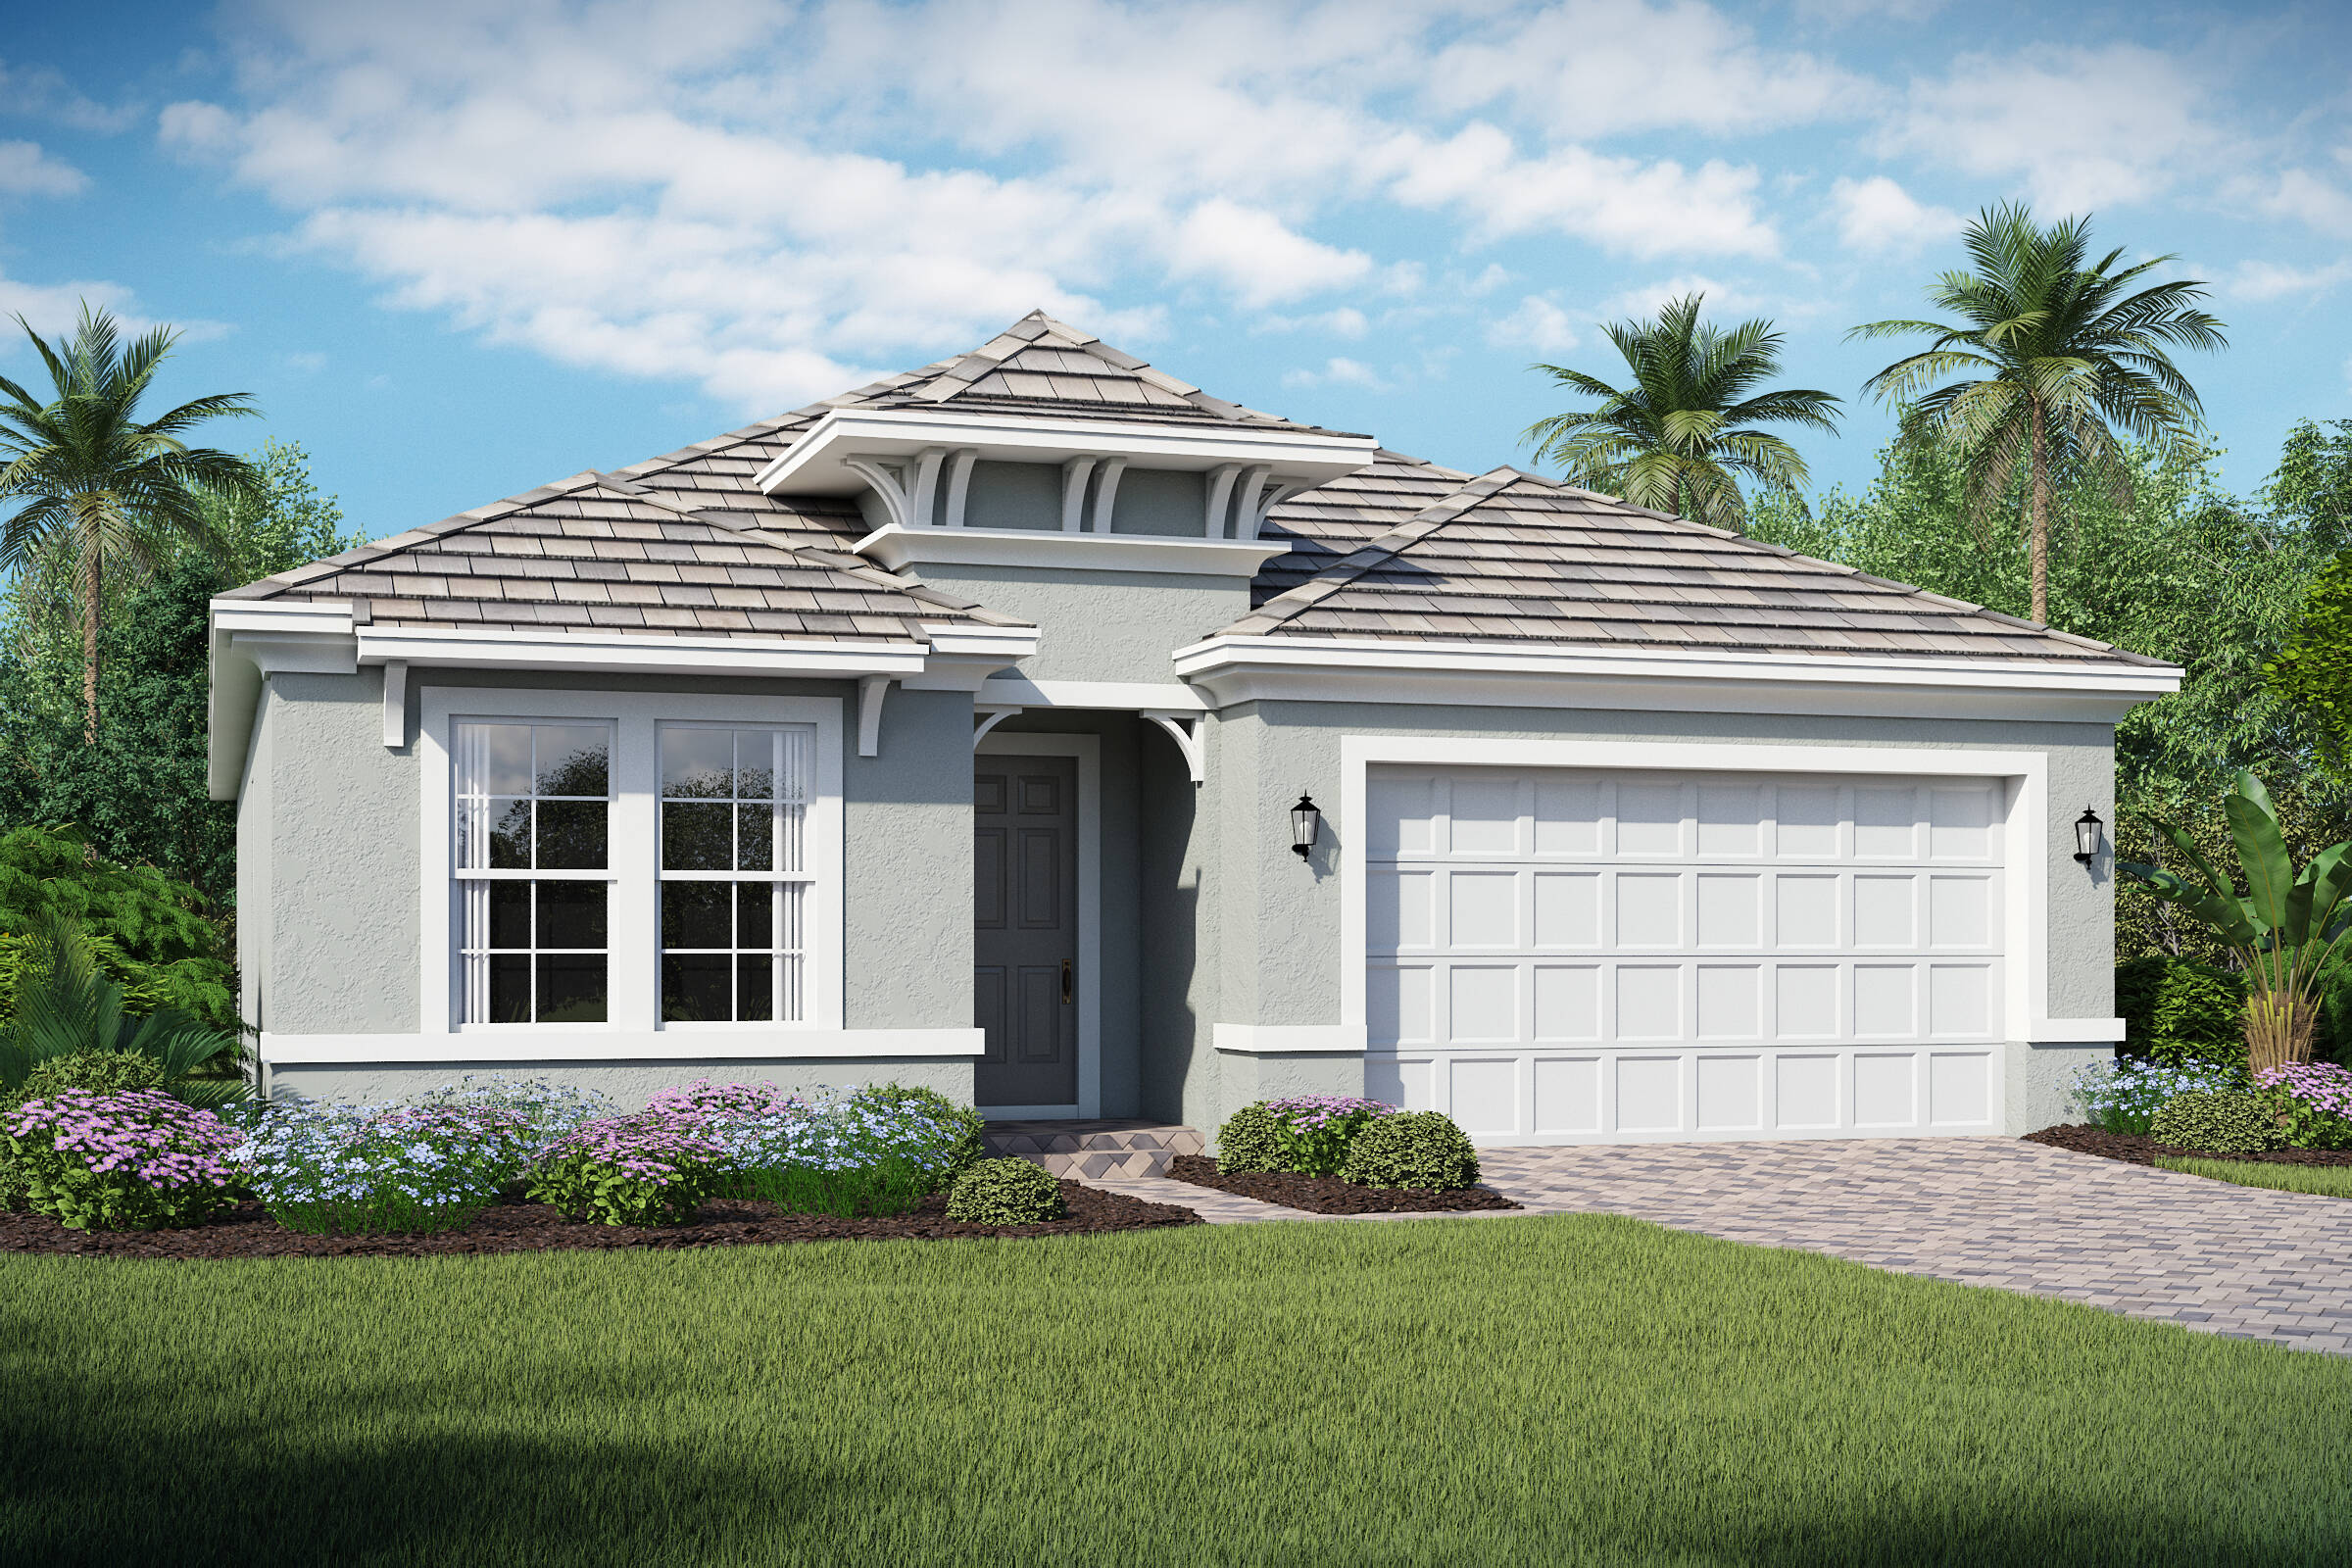 Saint Lucia B exterior lake florence preserve new homes in orlando florida